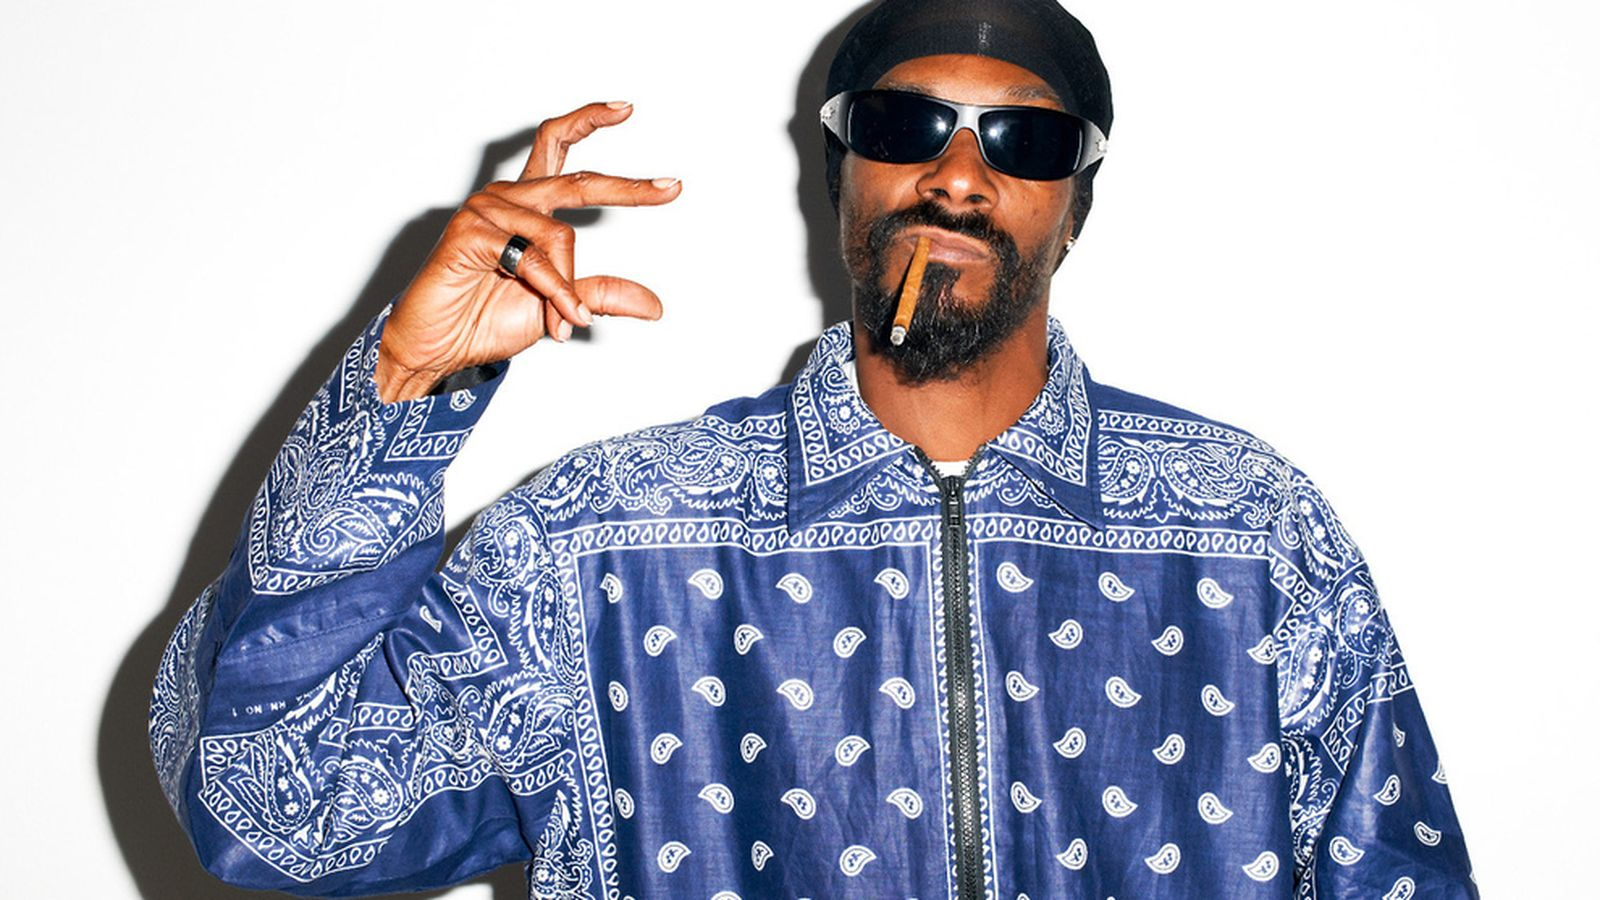 Snoop Dogg Hints New Album 'Make America Crip Again'